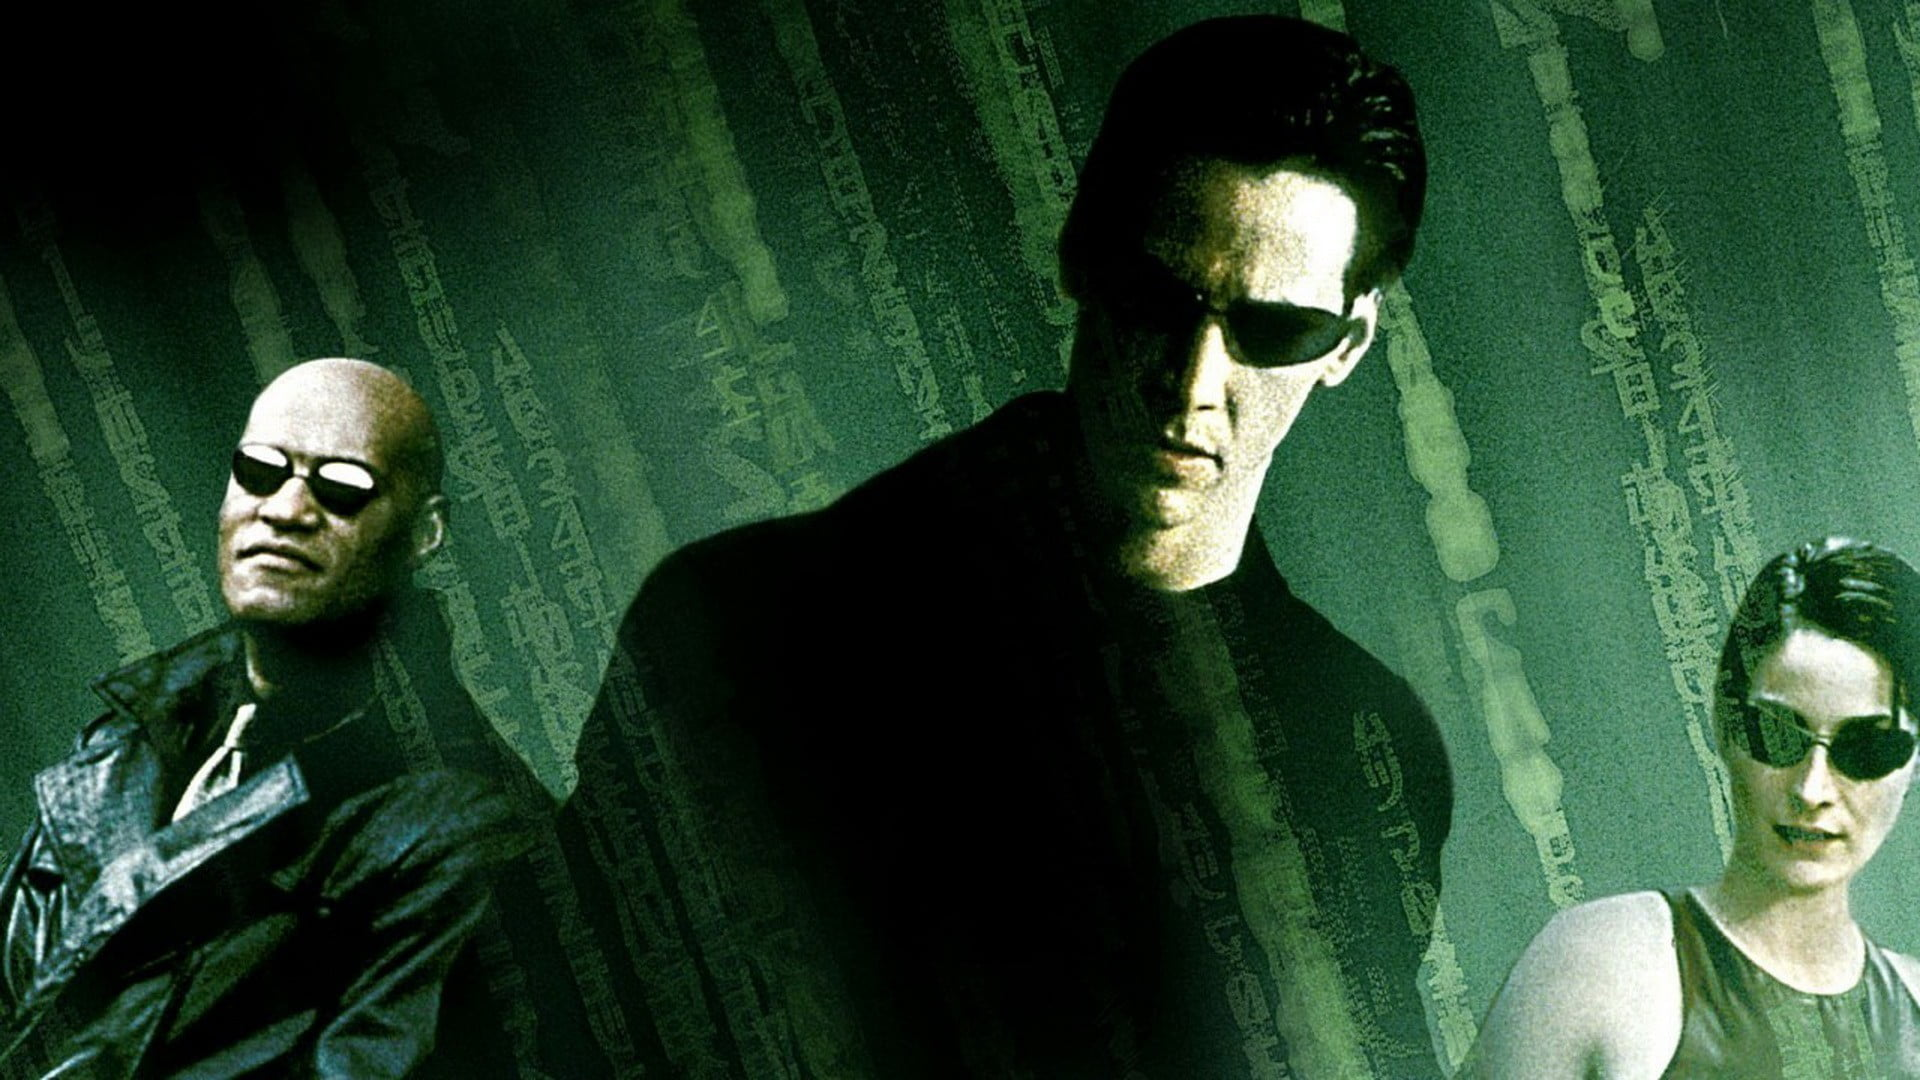 Free Download Matrix Reloaded Wallpaper The Matrix Movies Neo Keanu Reeves 1920x1080 For Your Desktop Mobile Tablet Explore 51 Neo Wallpaper Neo Wallpaper Neo Tilted Wallpapers Neo Tokyo Wallpaper